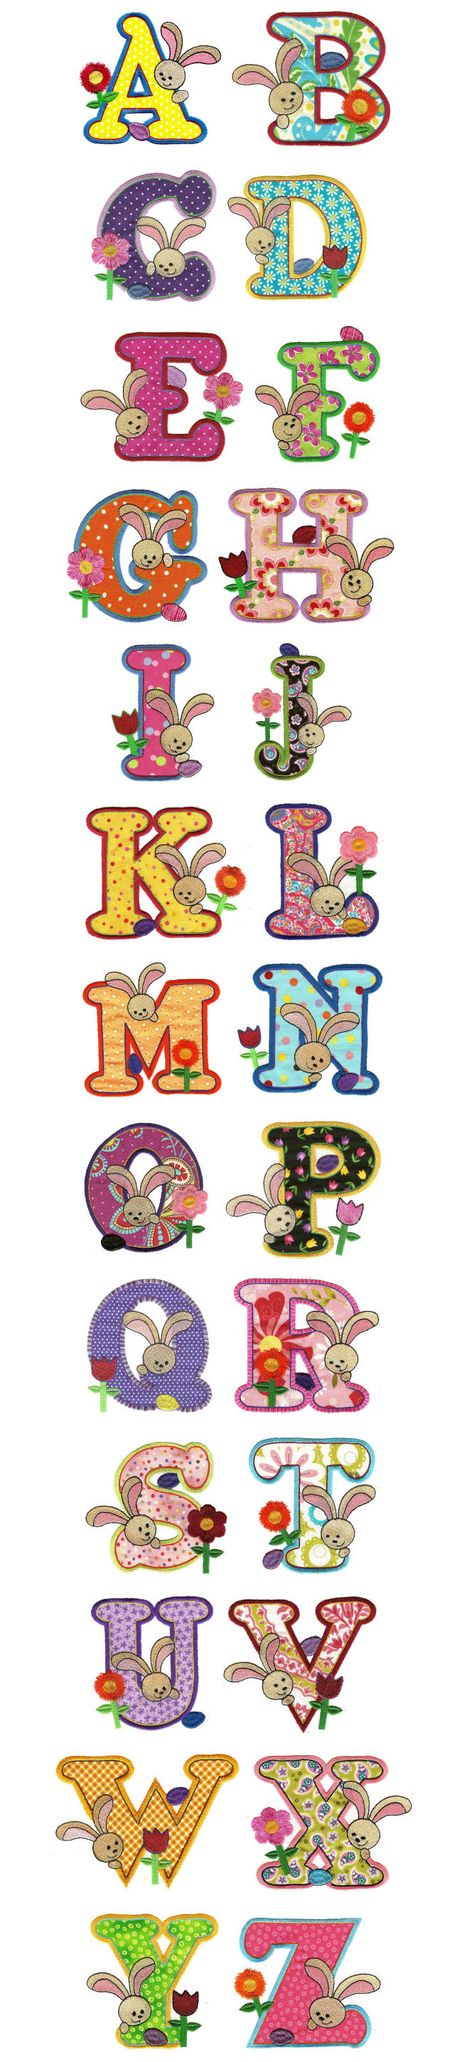 Embroidery | Free Maching Embroidery Designs | Egg Hunt Easter Alphabet Applique